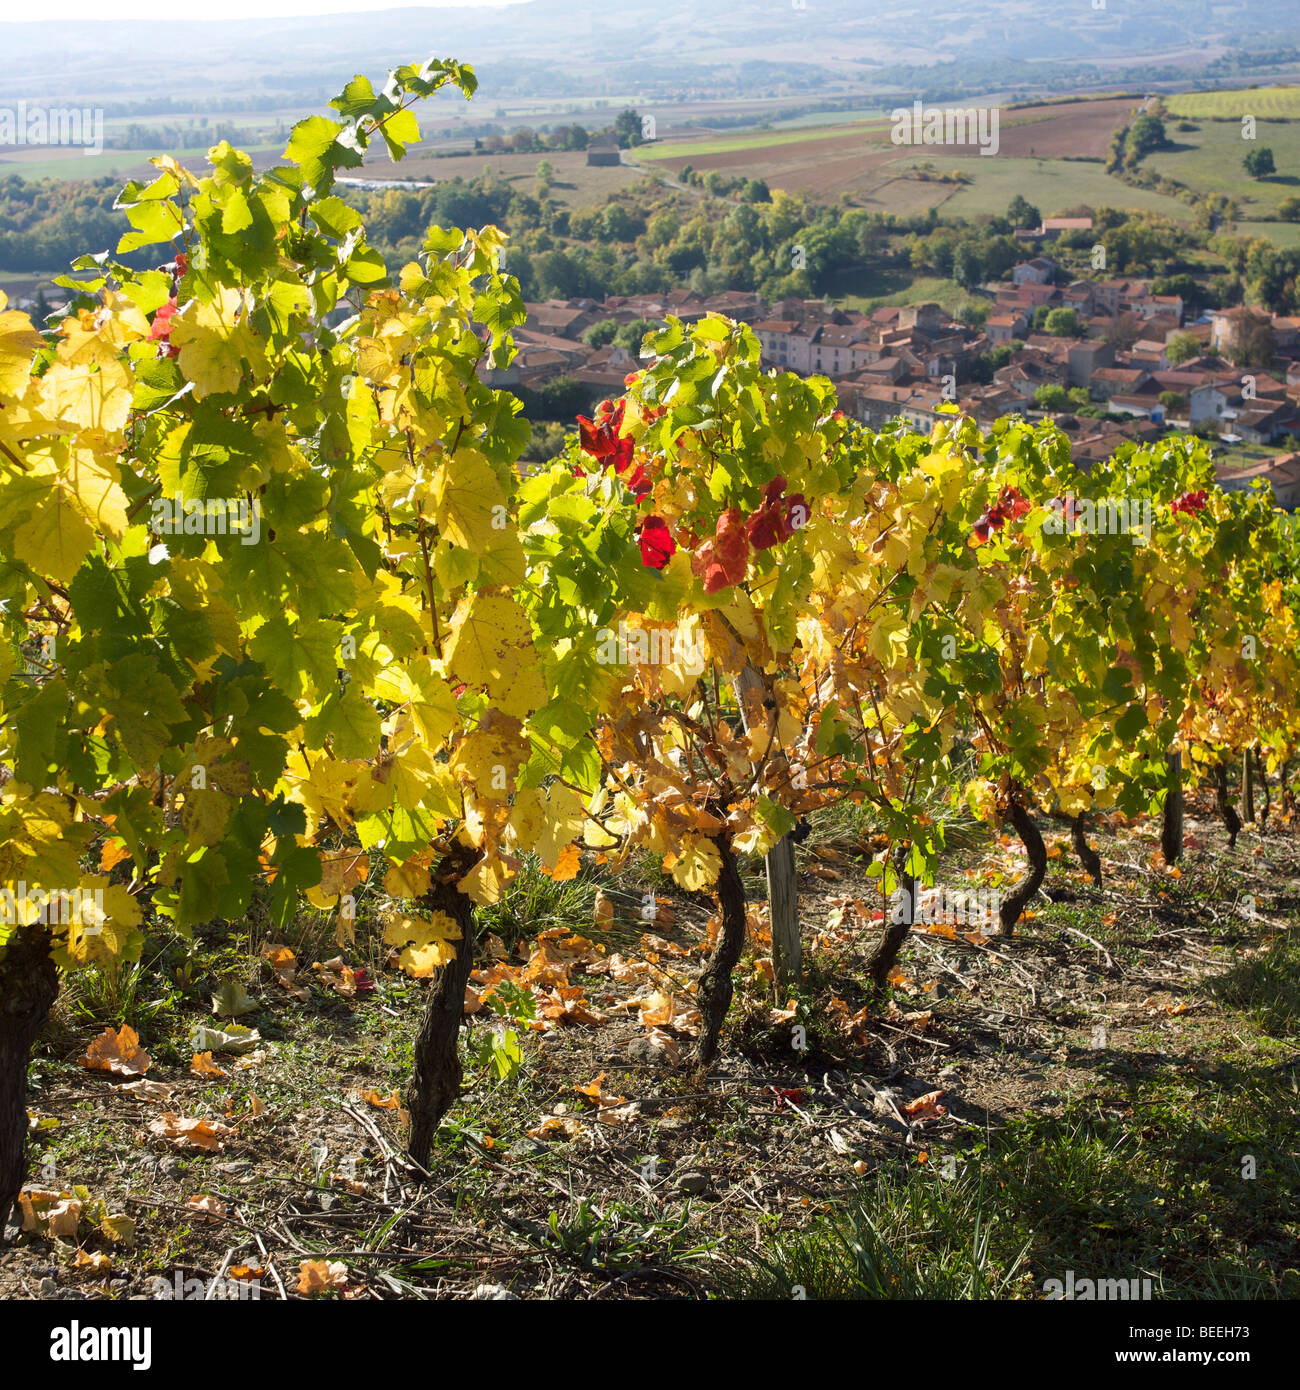 Vines in a French vineyard in autumn - Stock Image